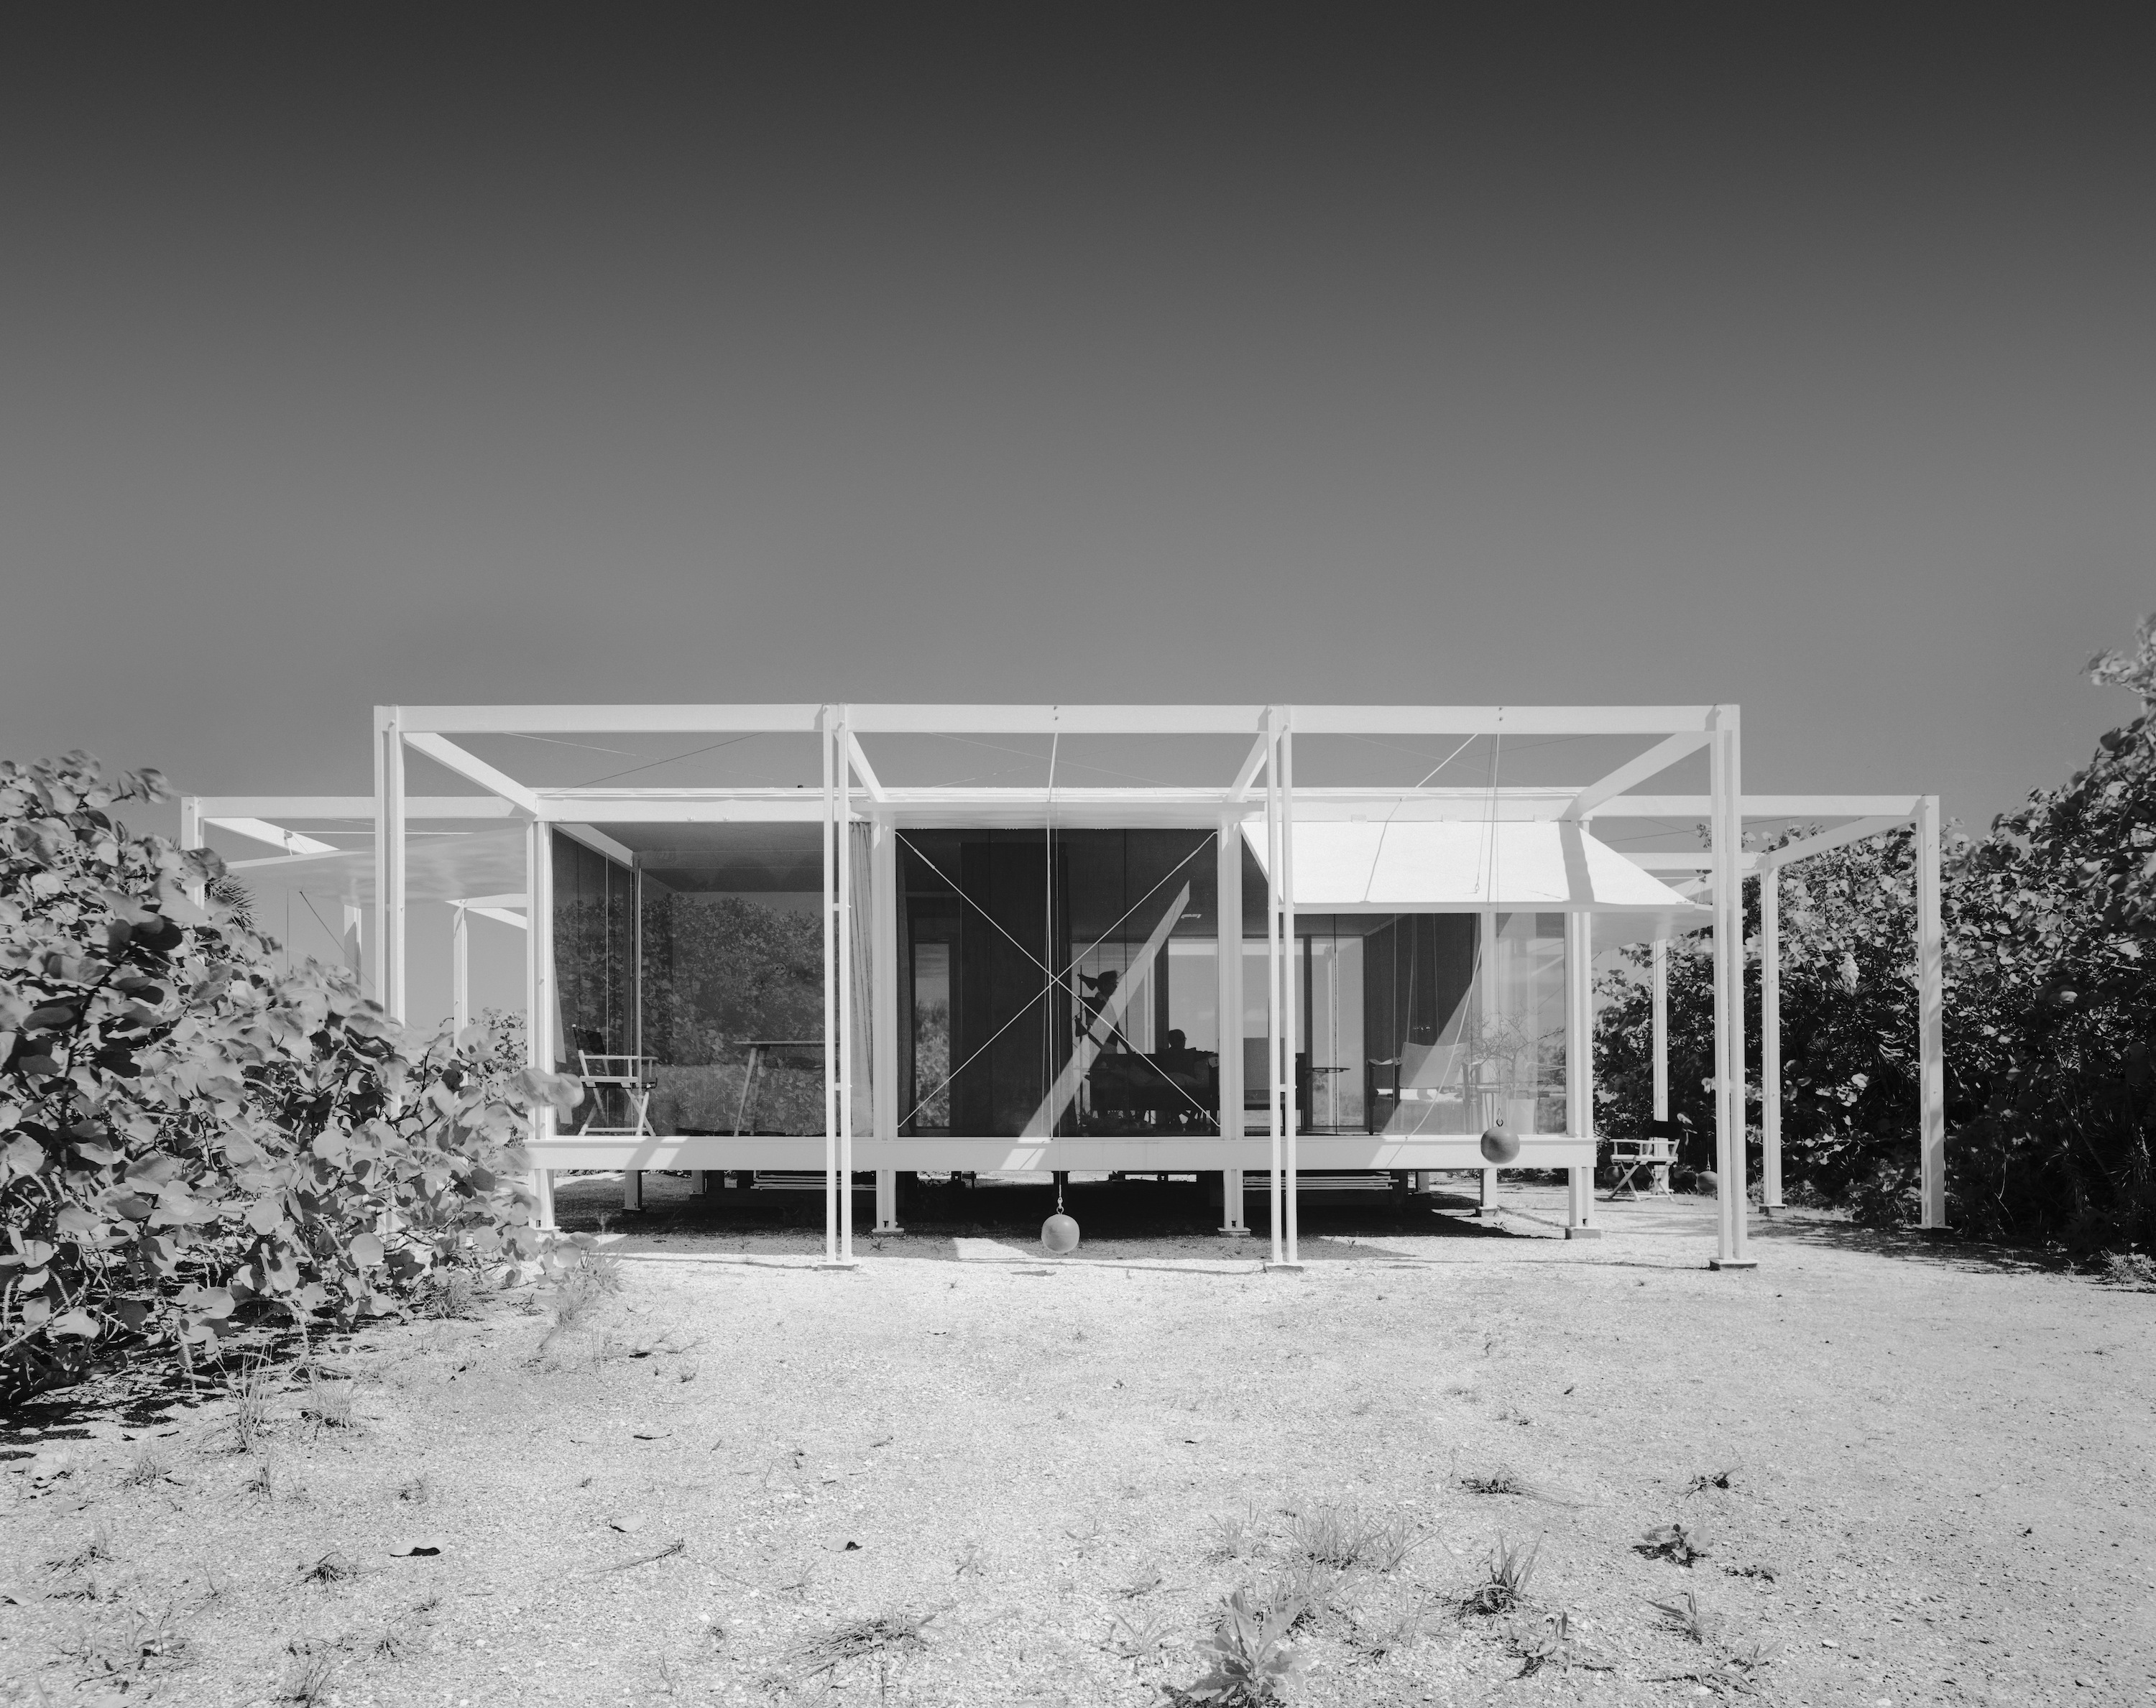 Low-slung modern guest house in black and white photo.